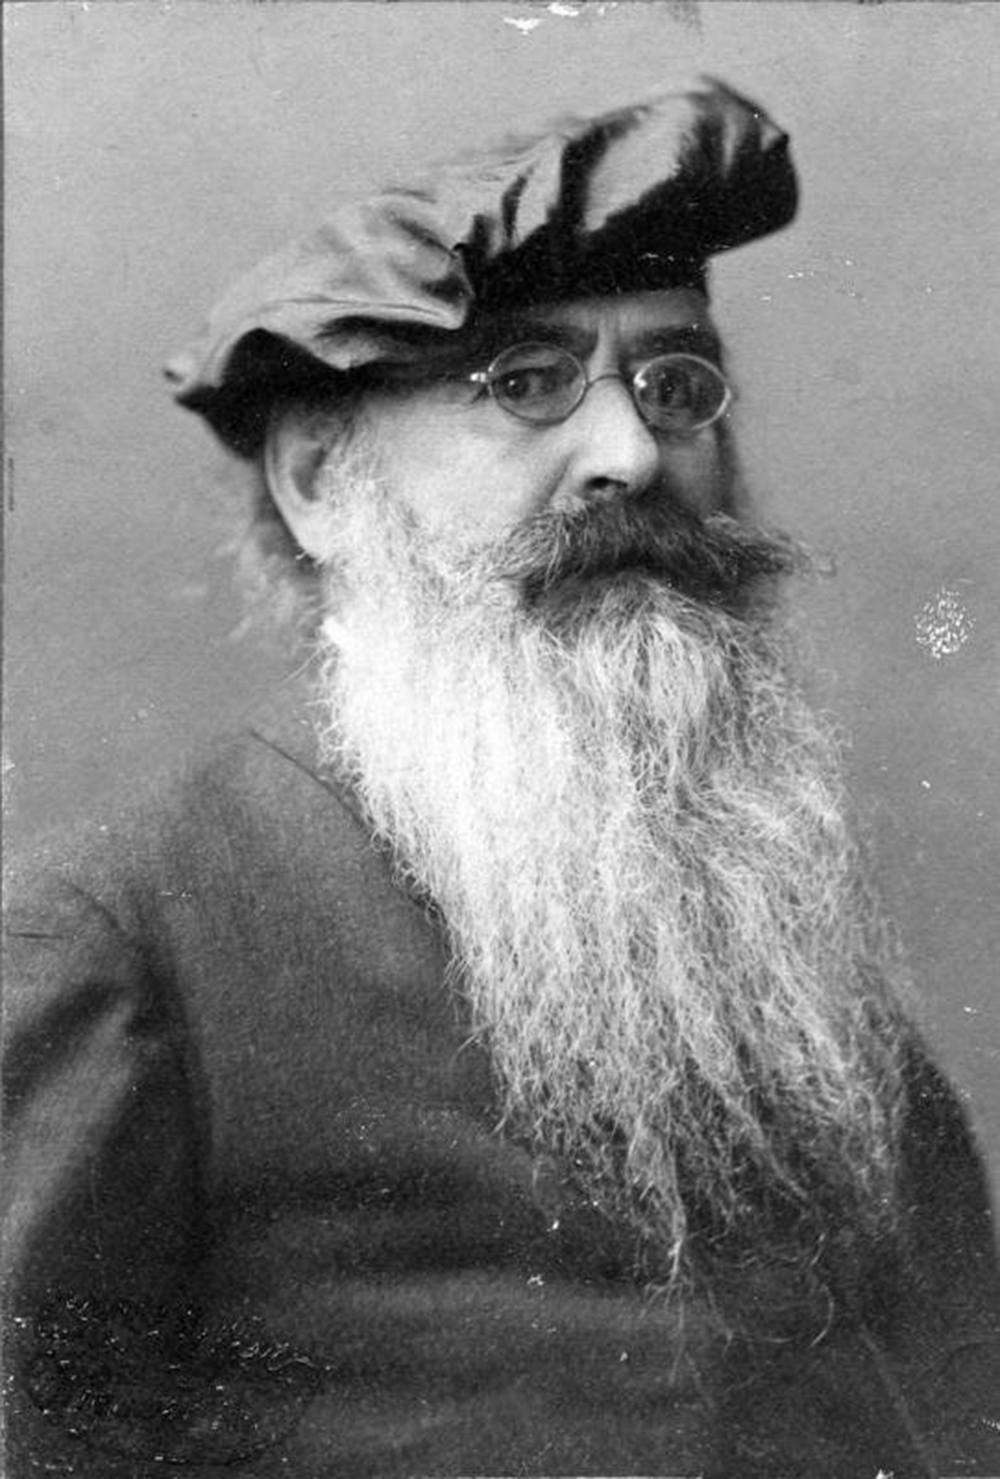 Guido von List, 1910. Photograph by Conrad H. Schiffer. Bundesarchiv, Bild 183-2007-0705-500 / Conrad H. Schiffer / CC-BY-SA 3.0.